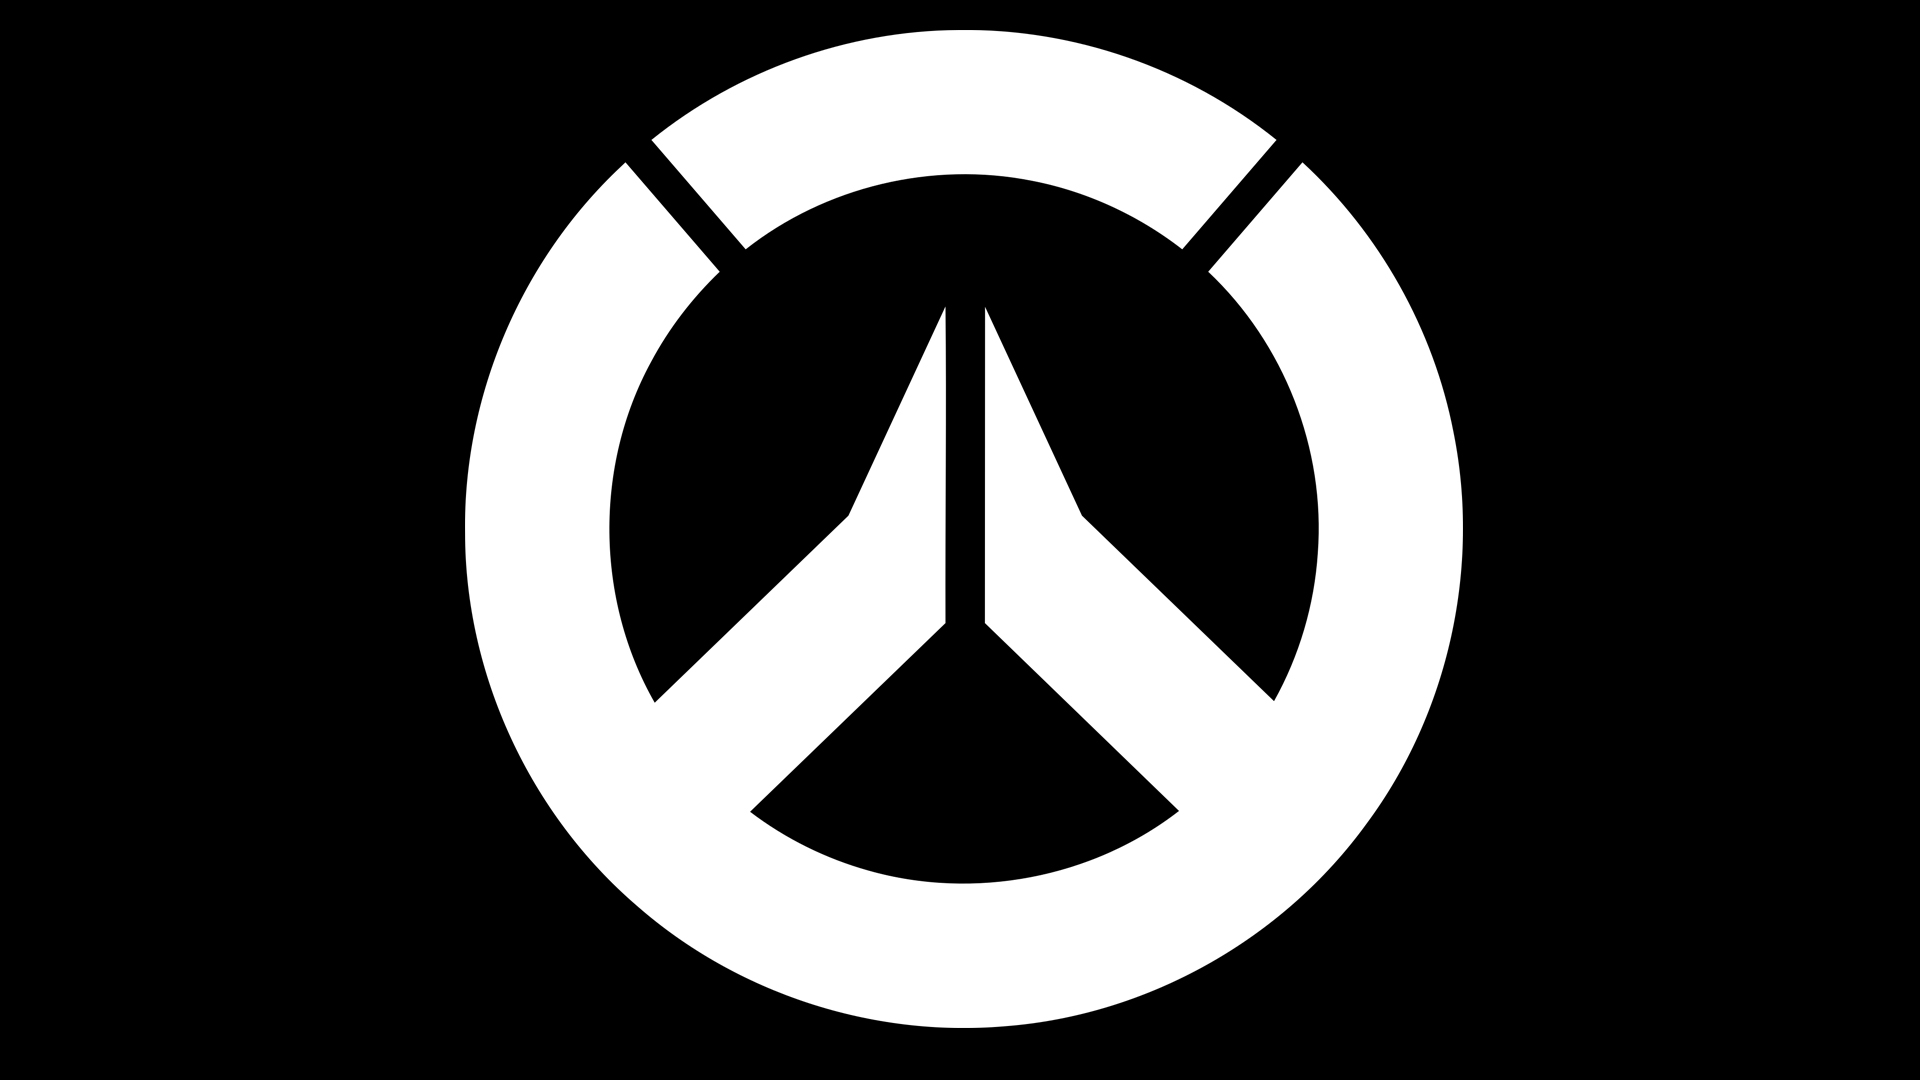 Meaning Overwatch logo and symbol.